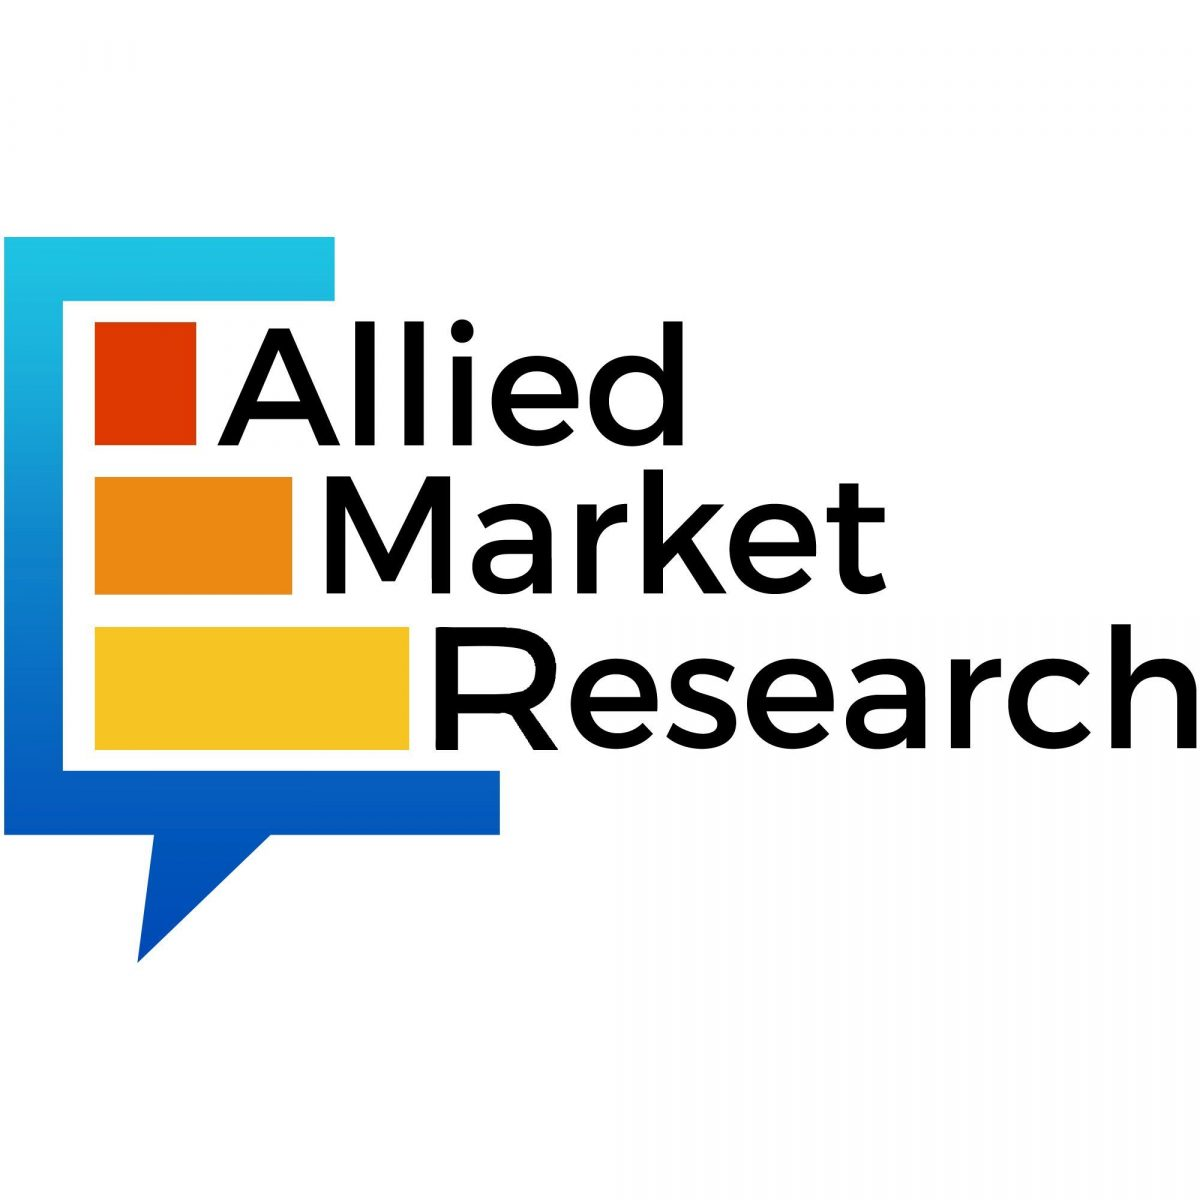 Automotive Acoustic Engineering Services Market to Reach $4.80 Bn, Globally, by 2027 at 7.8% CAGR: Allied Market Research